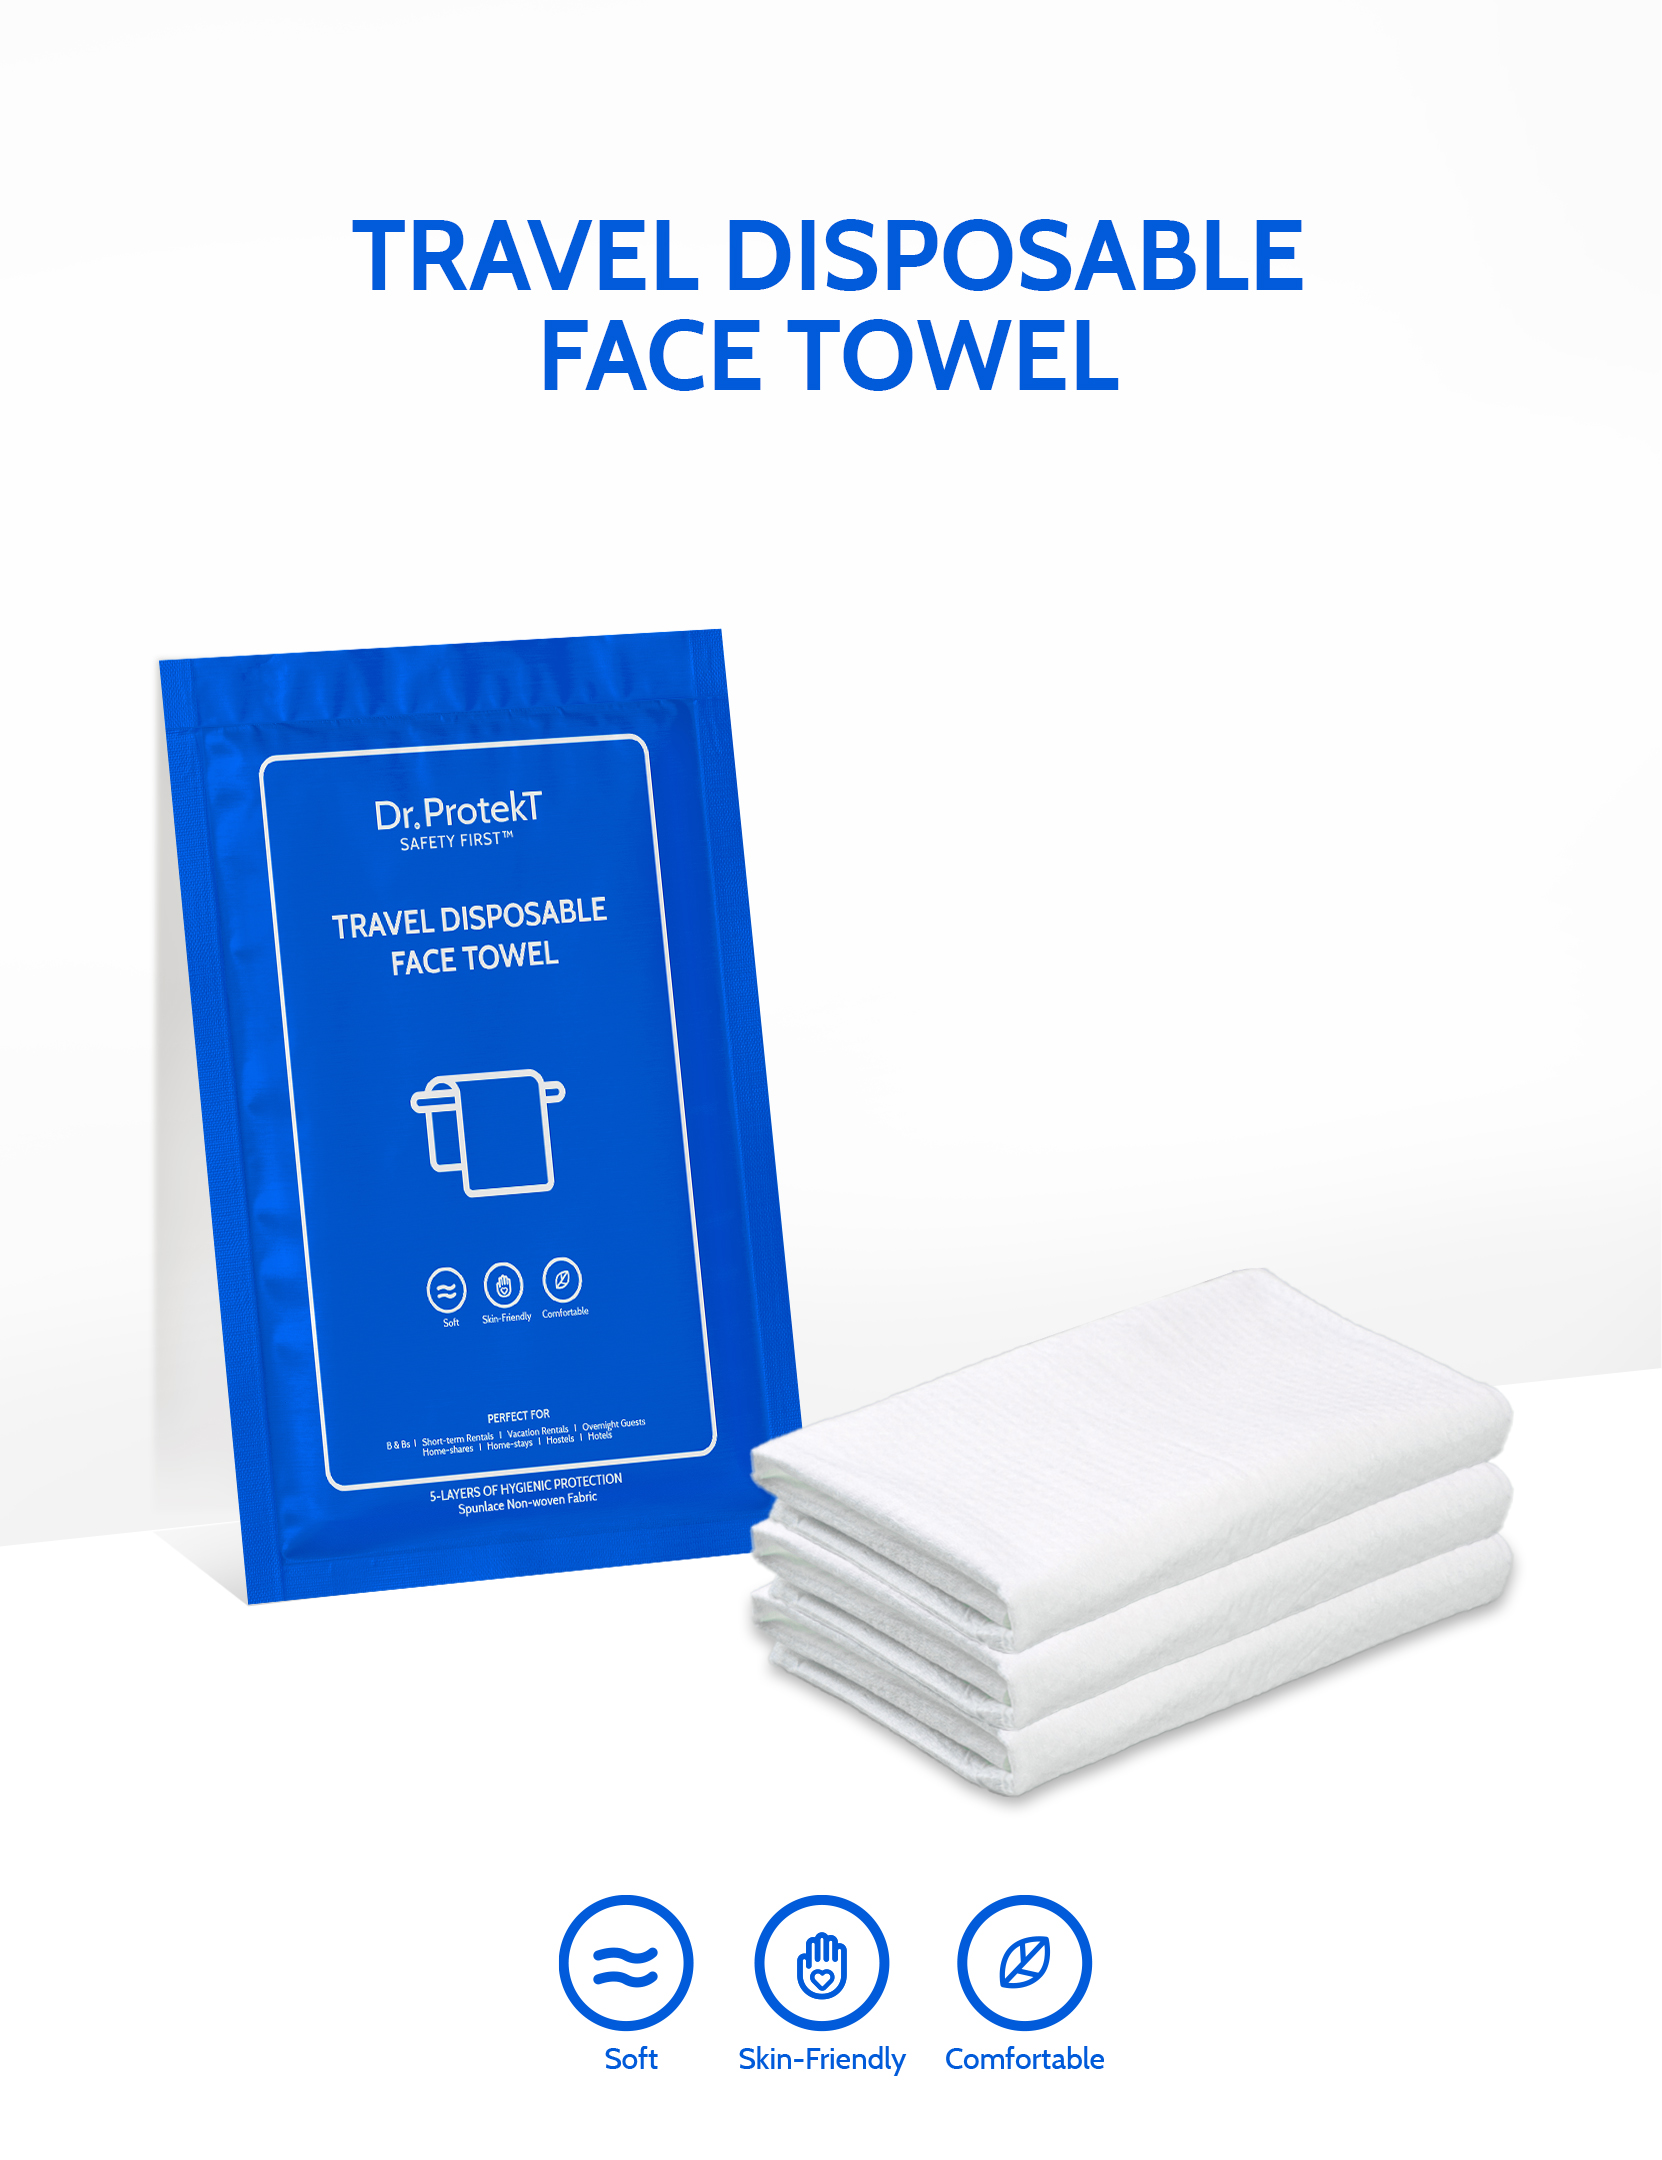 Dr. Protekt Safety First™ Travel Disposable Face Towel